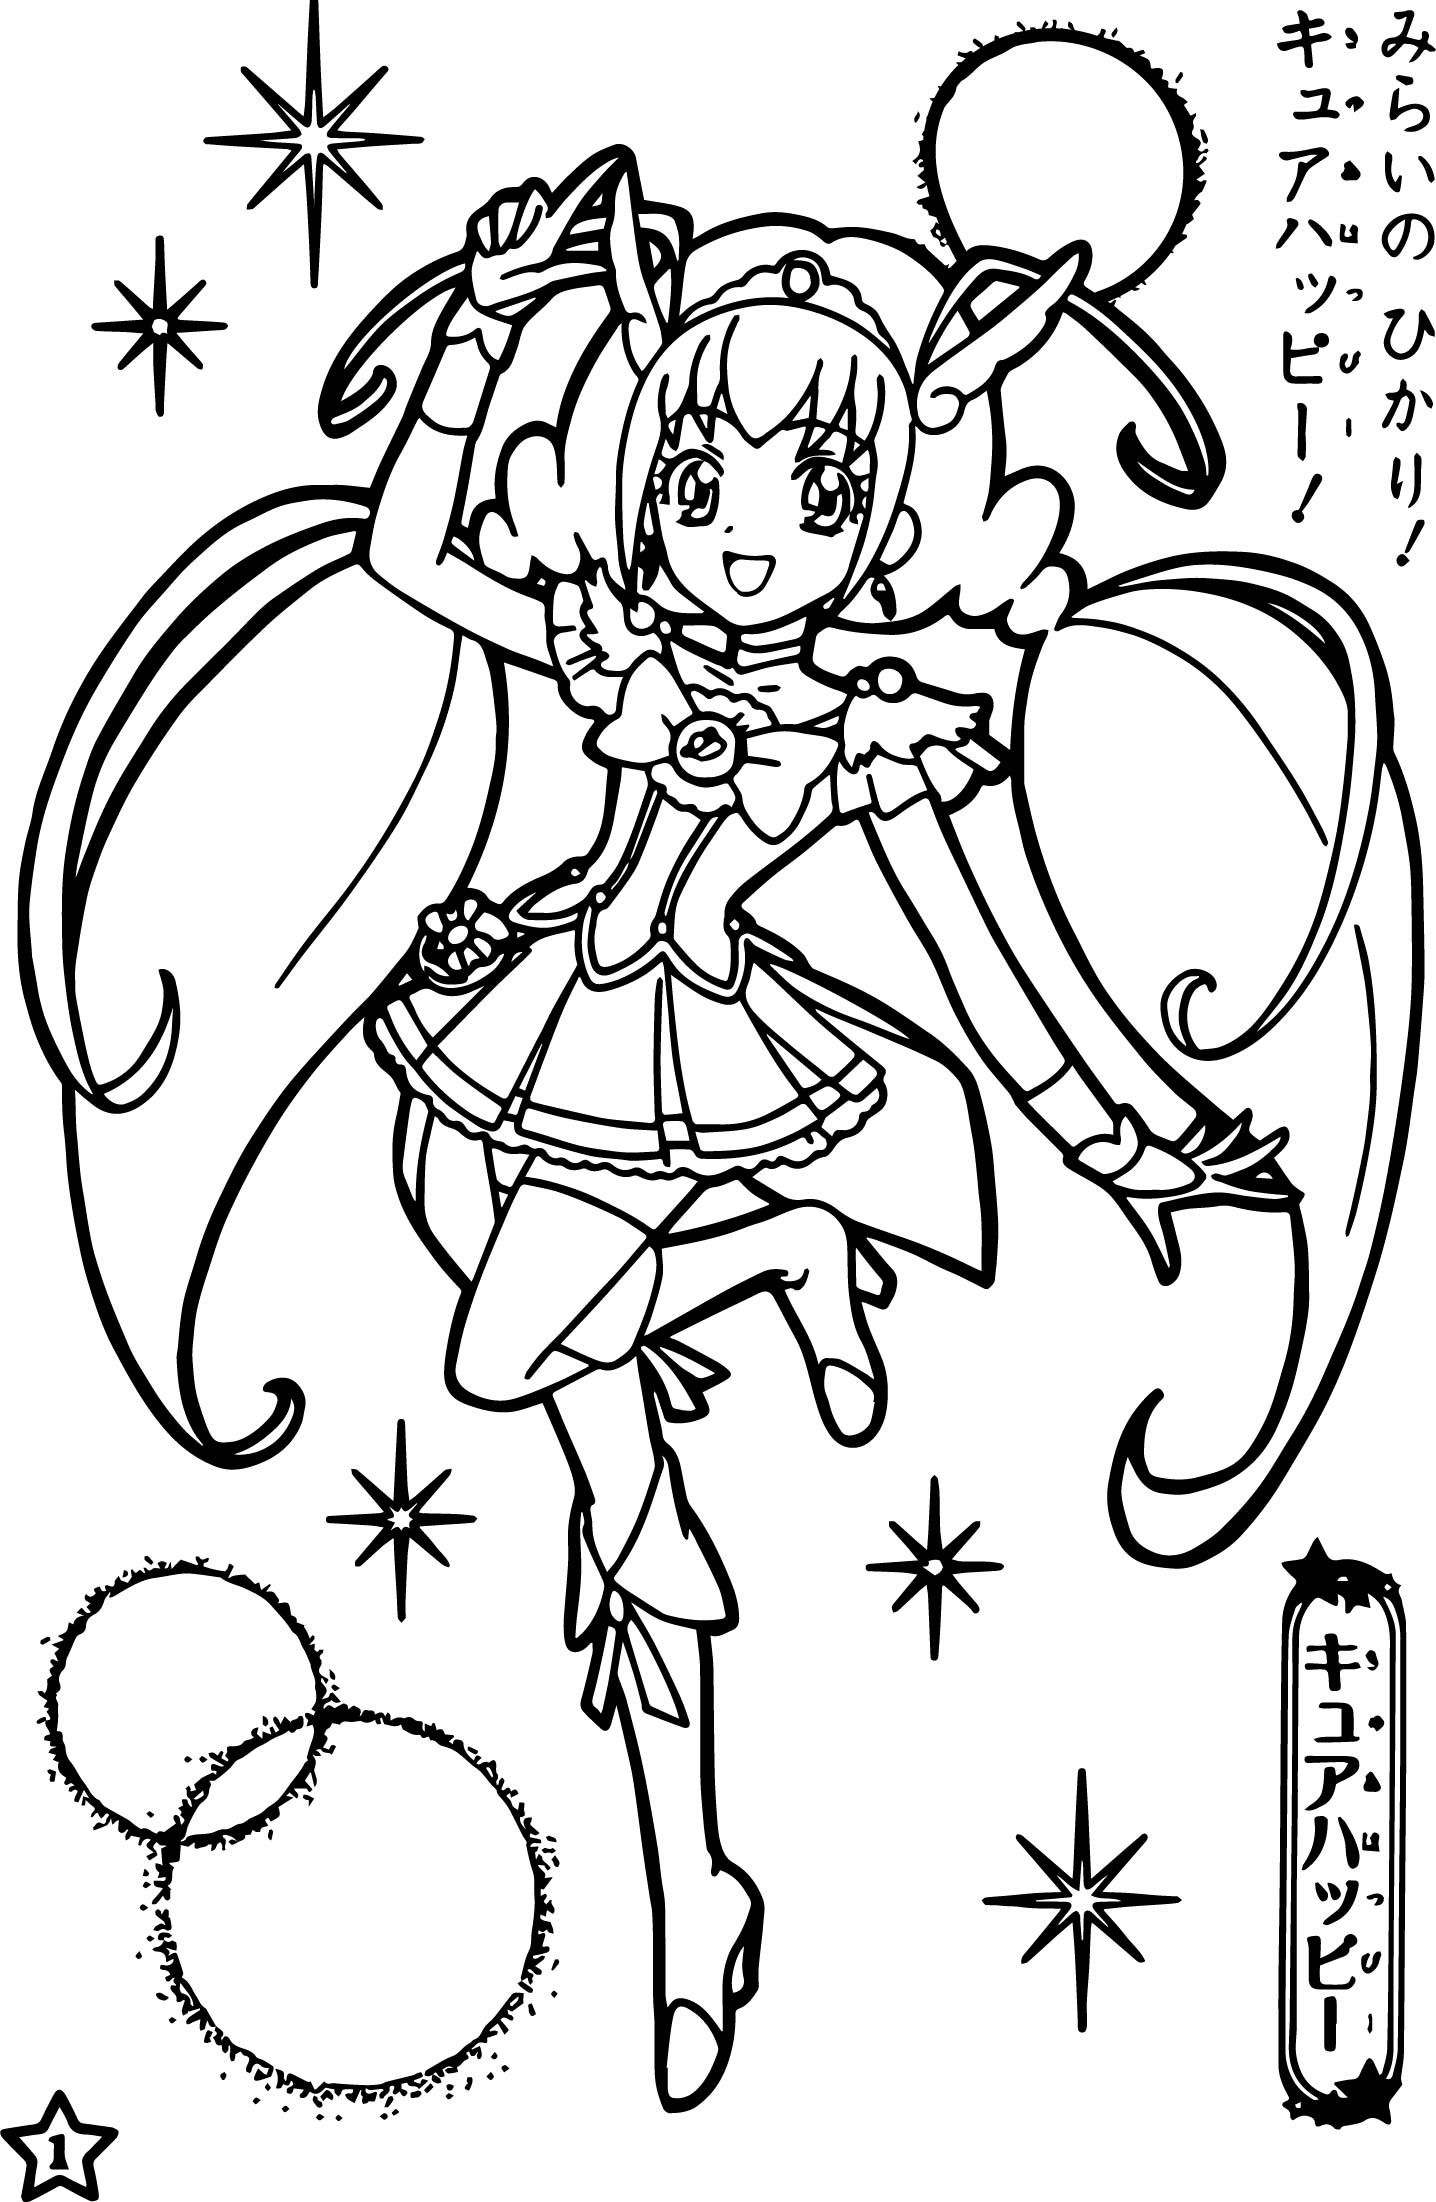 glitter force coloring pages Smile Pretty Cure Glitter Force Coloring Pages | wecoloringpage  glitter force coloring pages